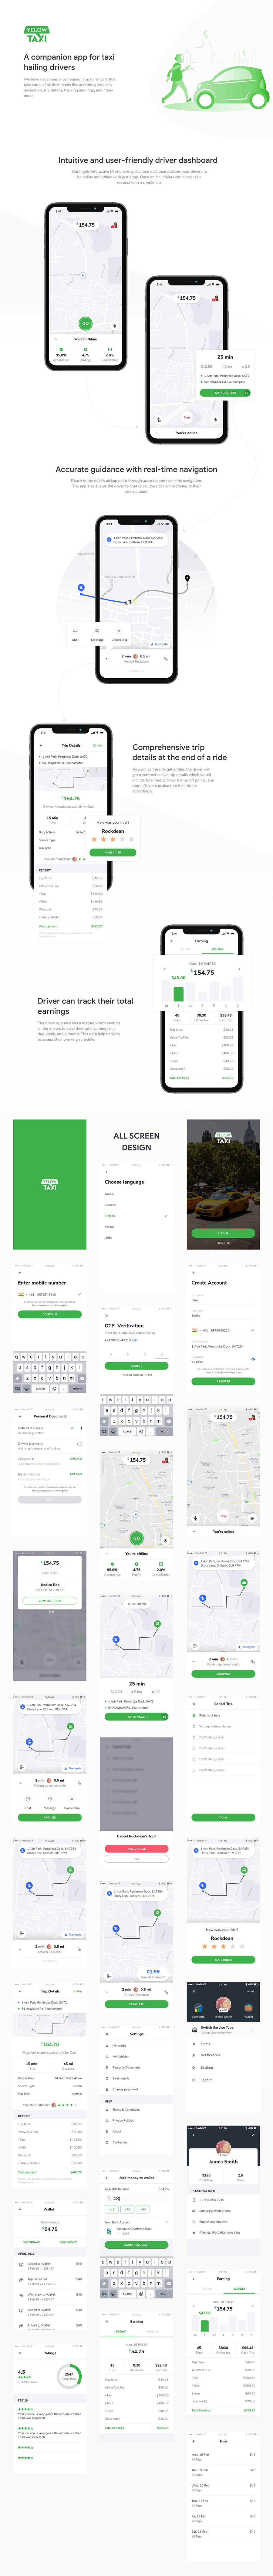 Yelow Taxi Mobile App UI Kit